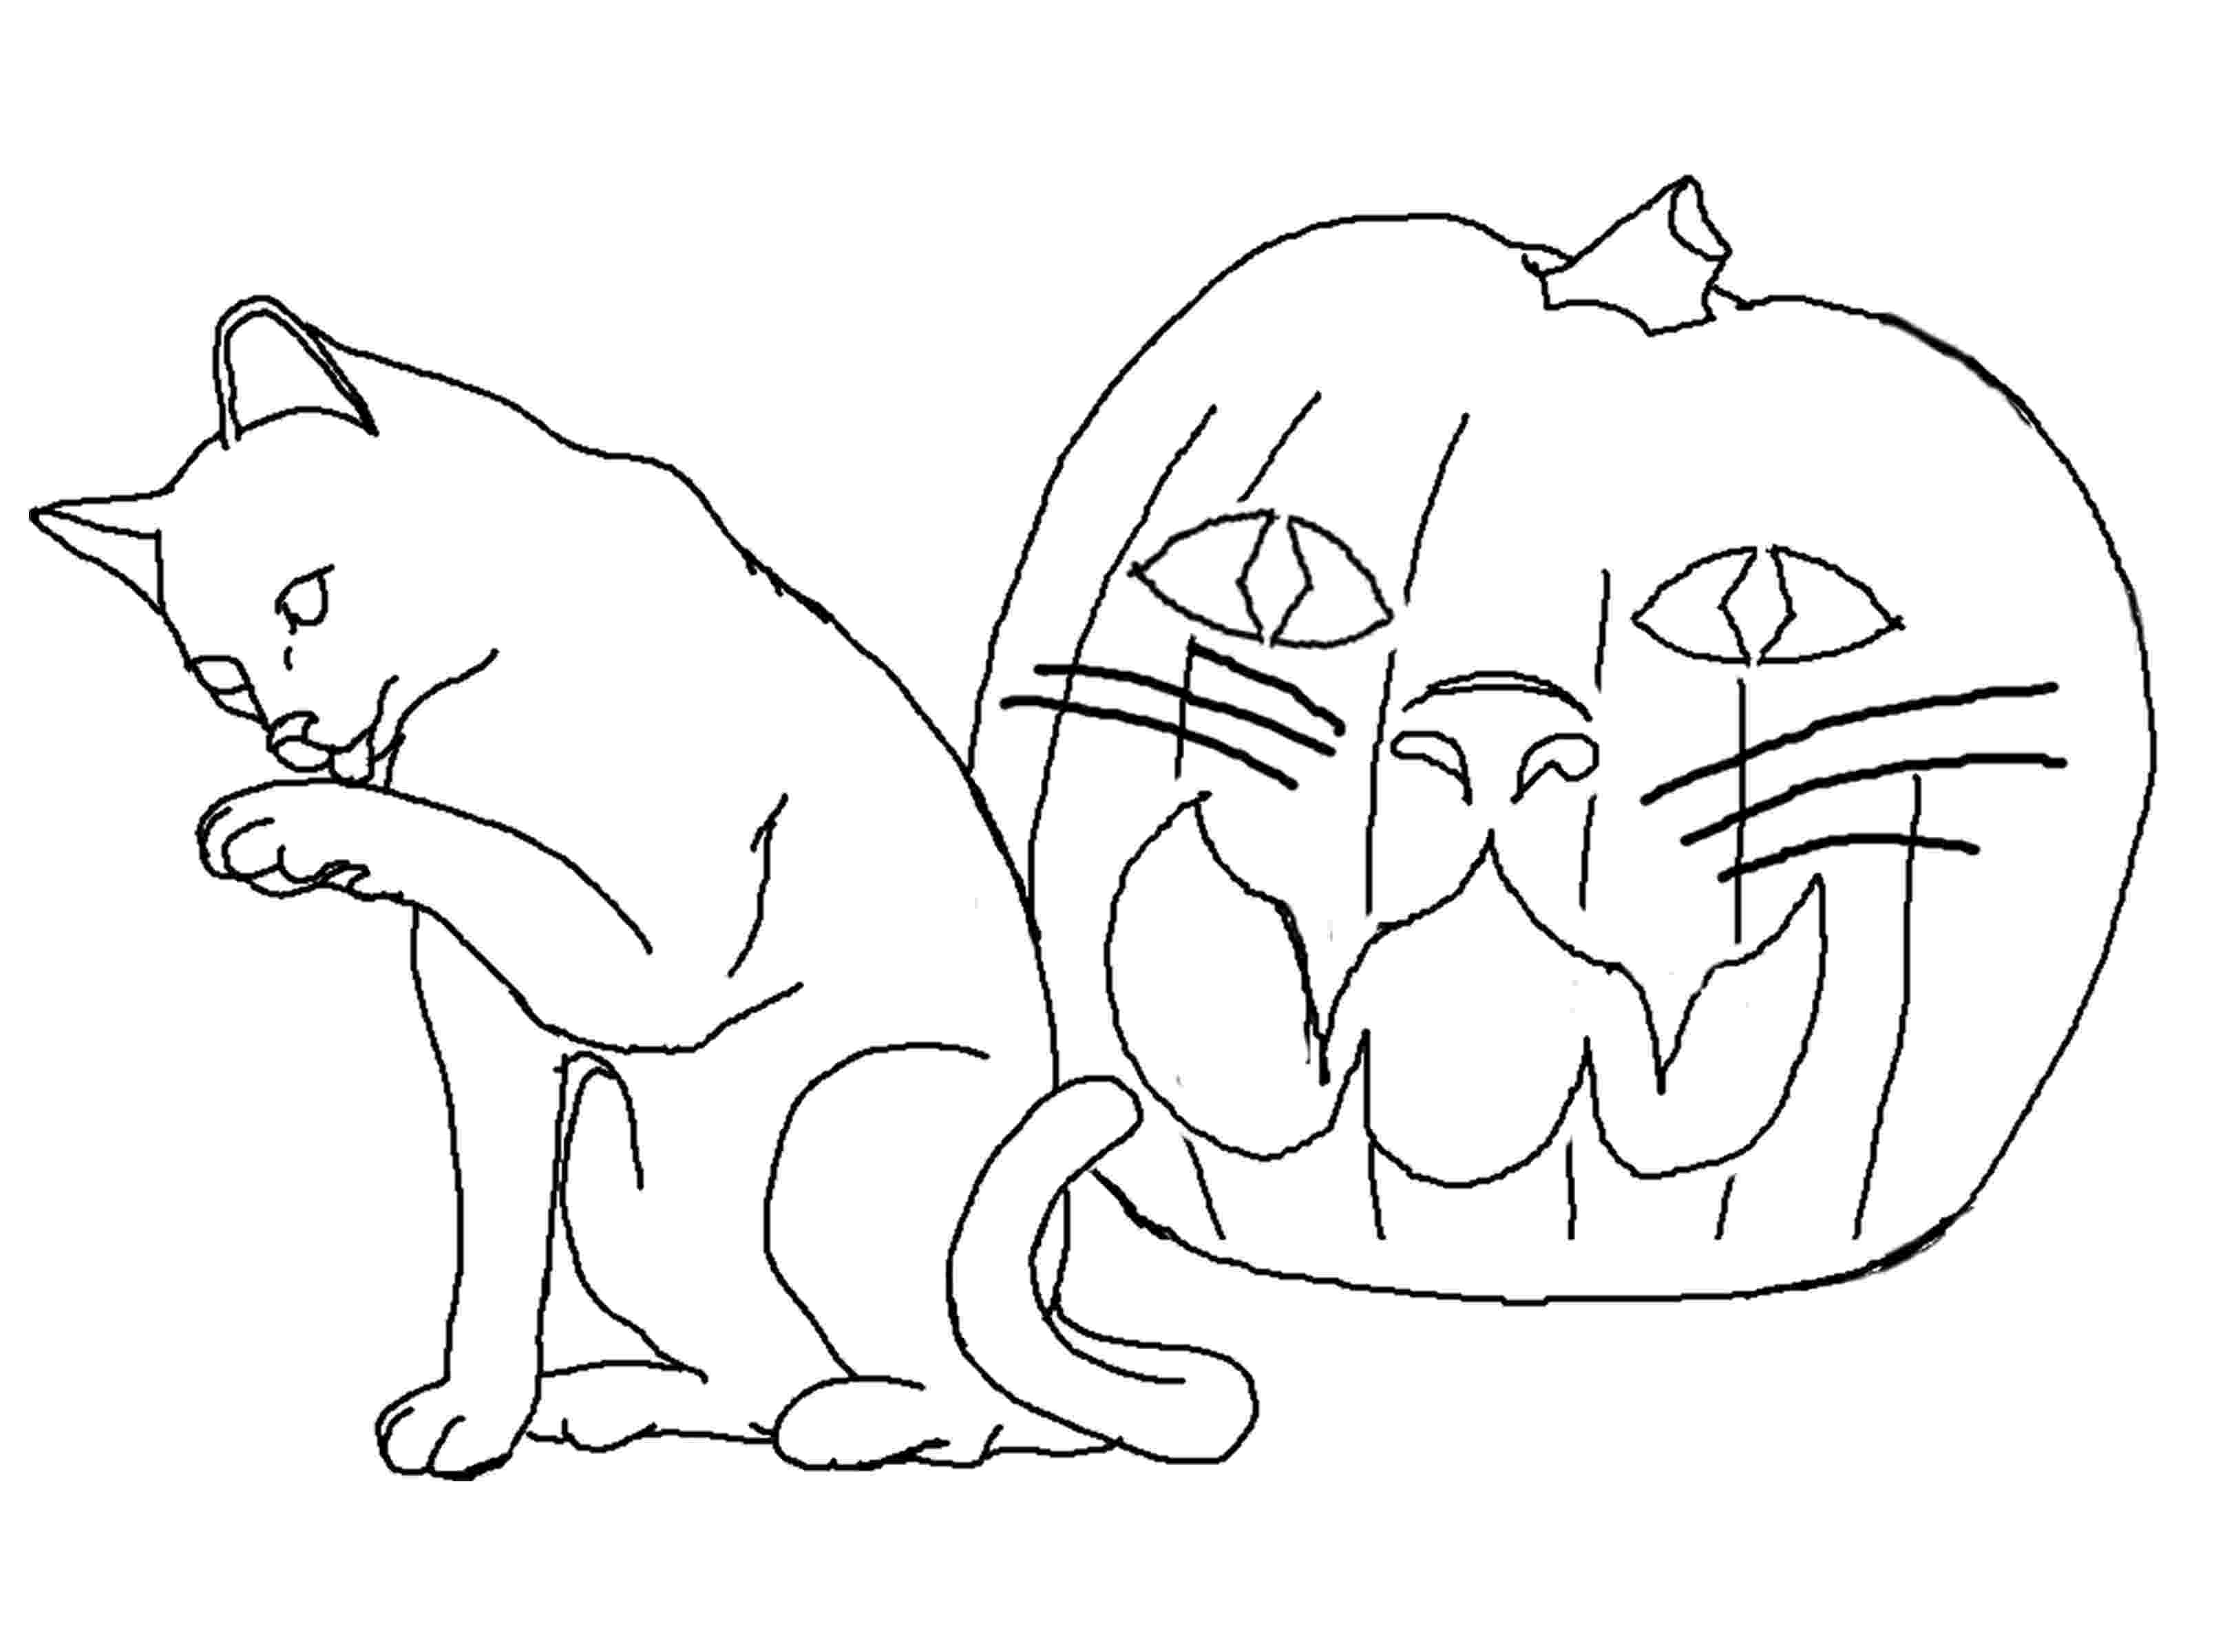 cat coloring pages to print cat coloring pages only coloring pages coloring pages print cat to